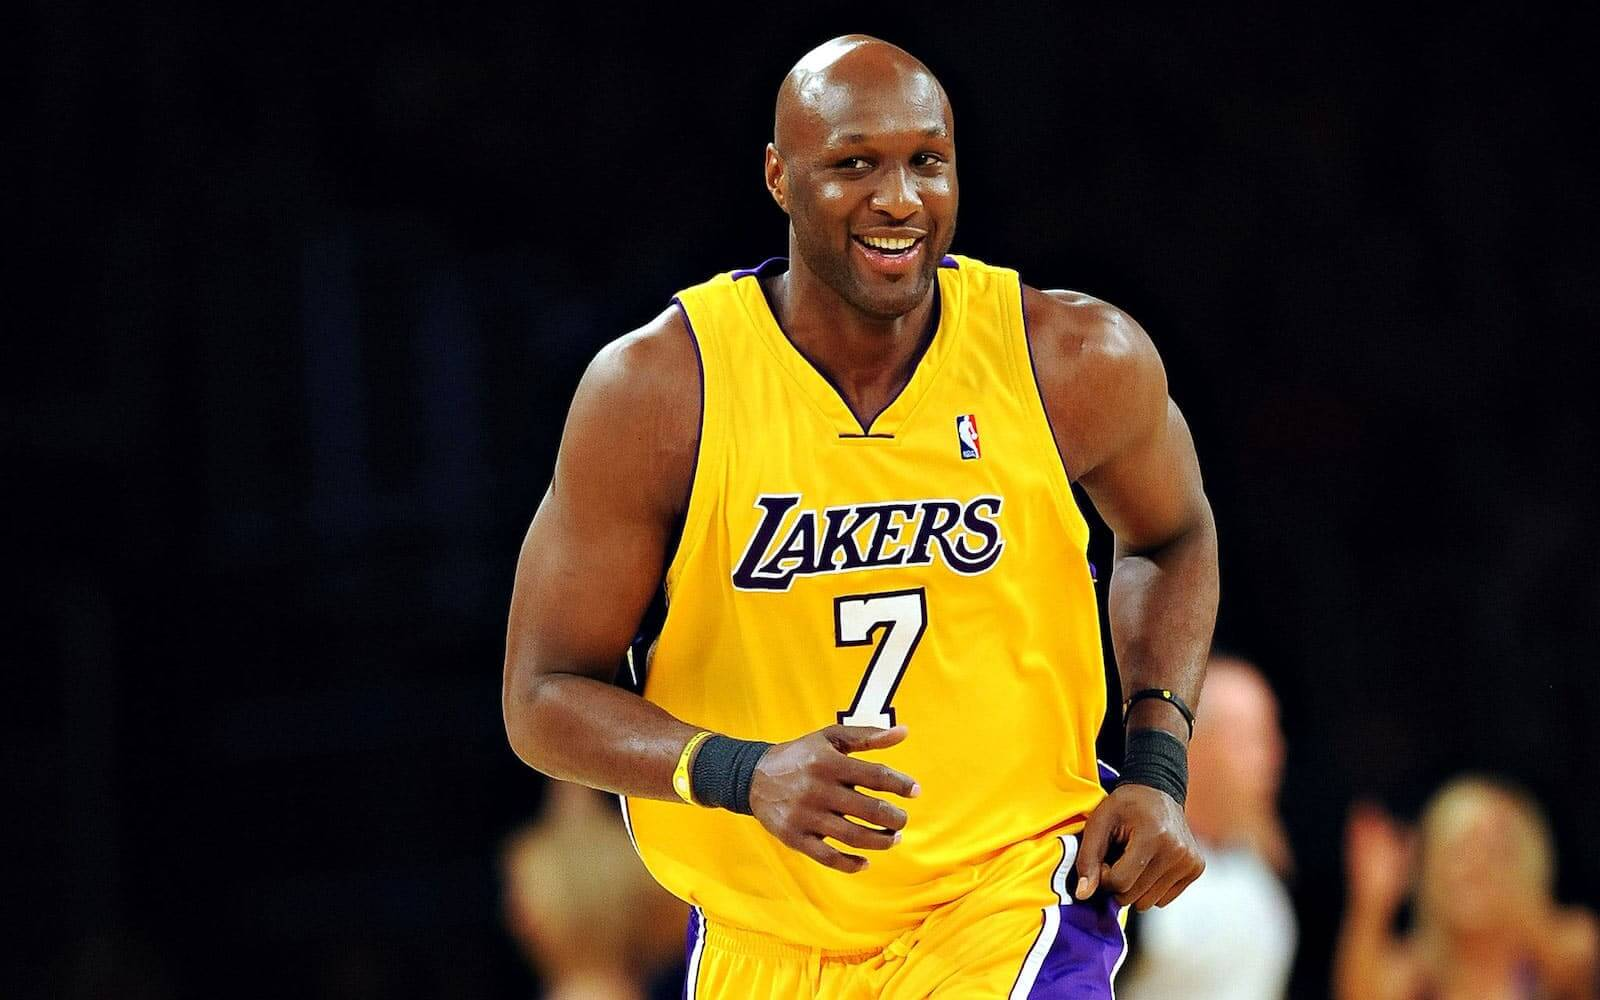 Celebrity Talent - Lamar Odom - Lakers - Celebrity Rider